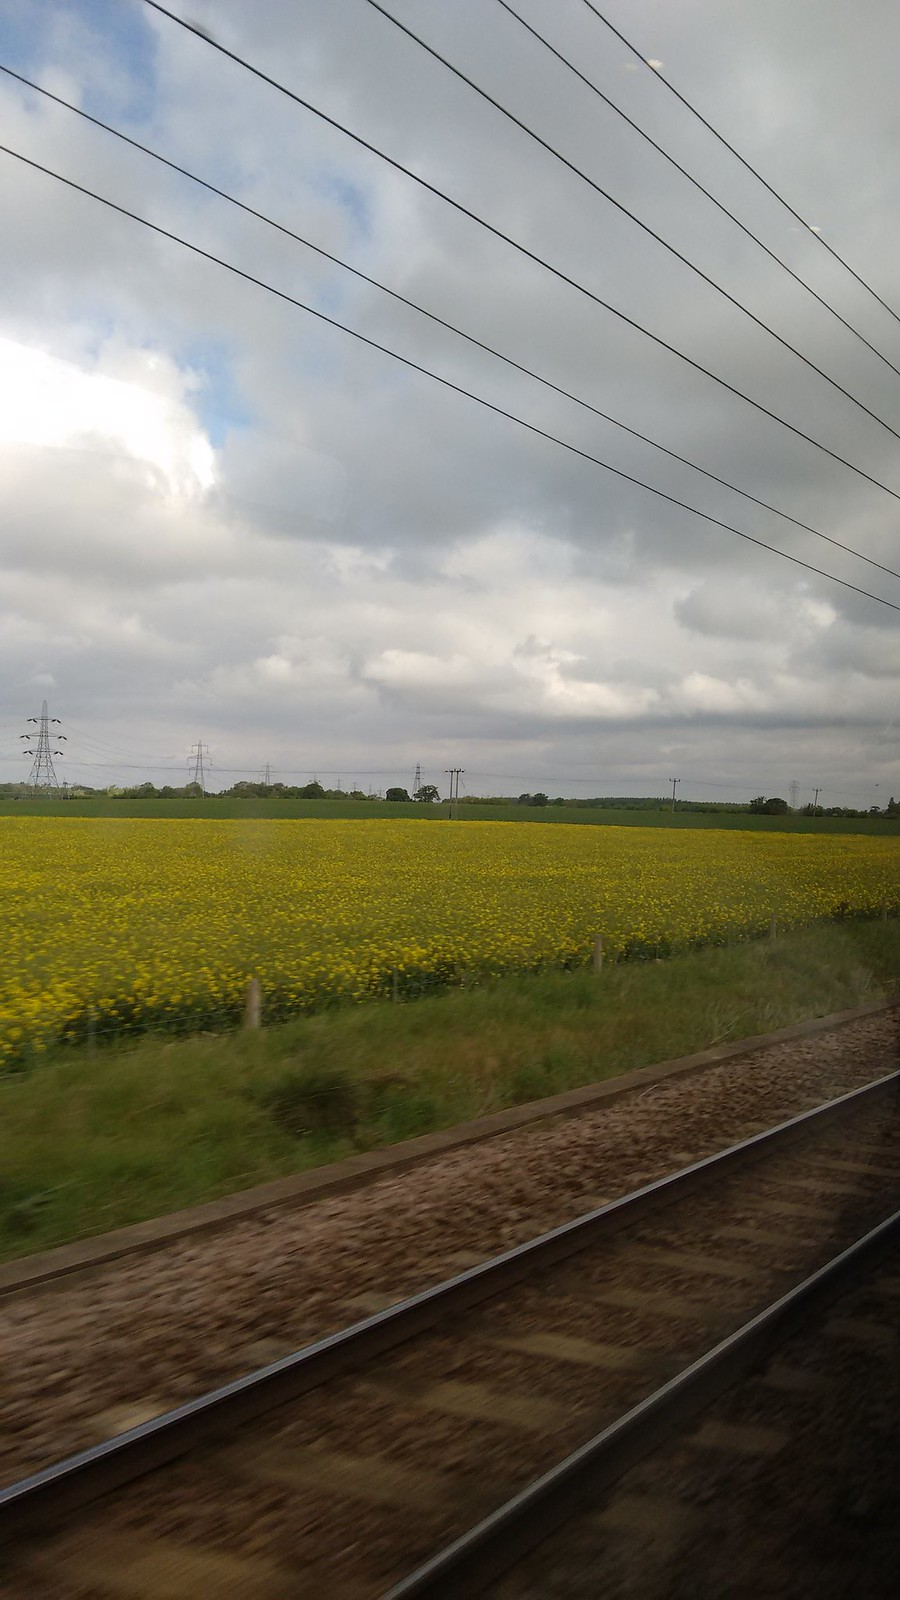 View of field from train window